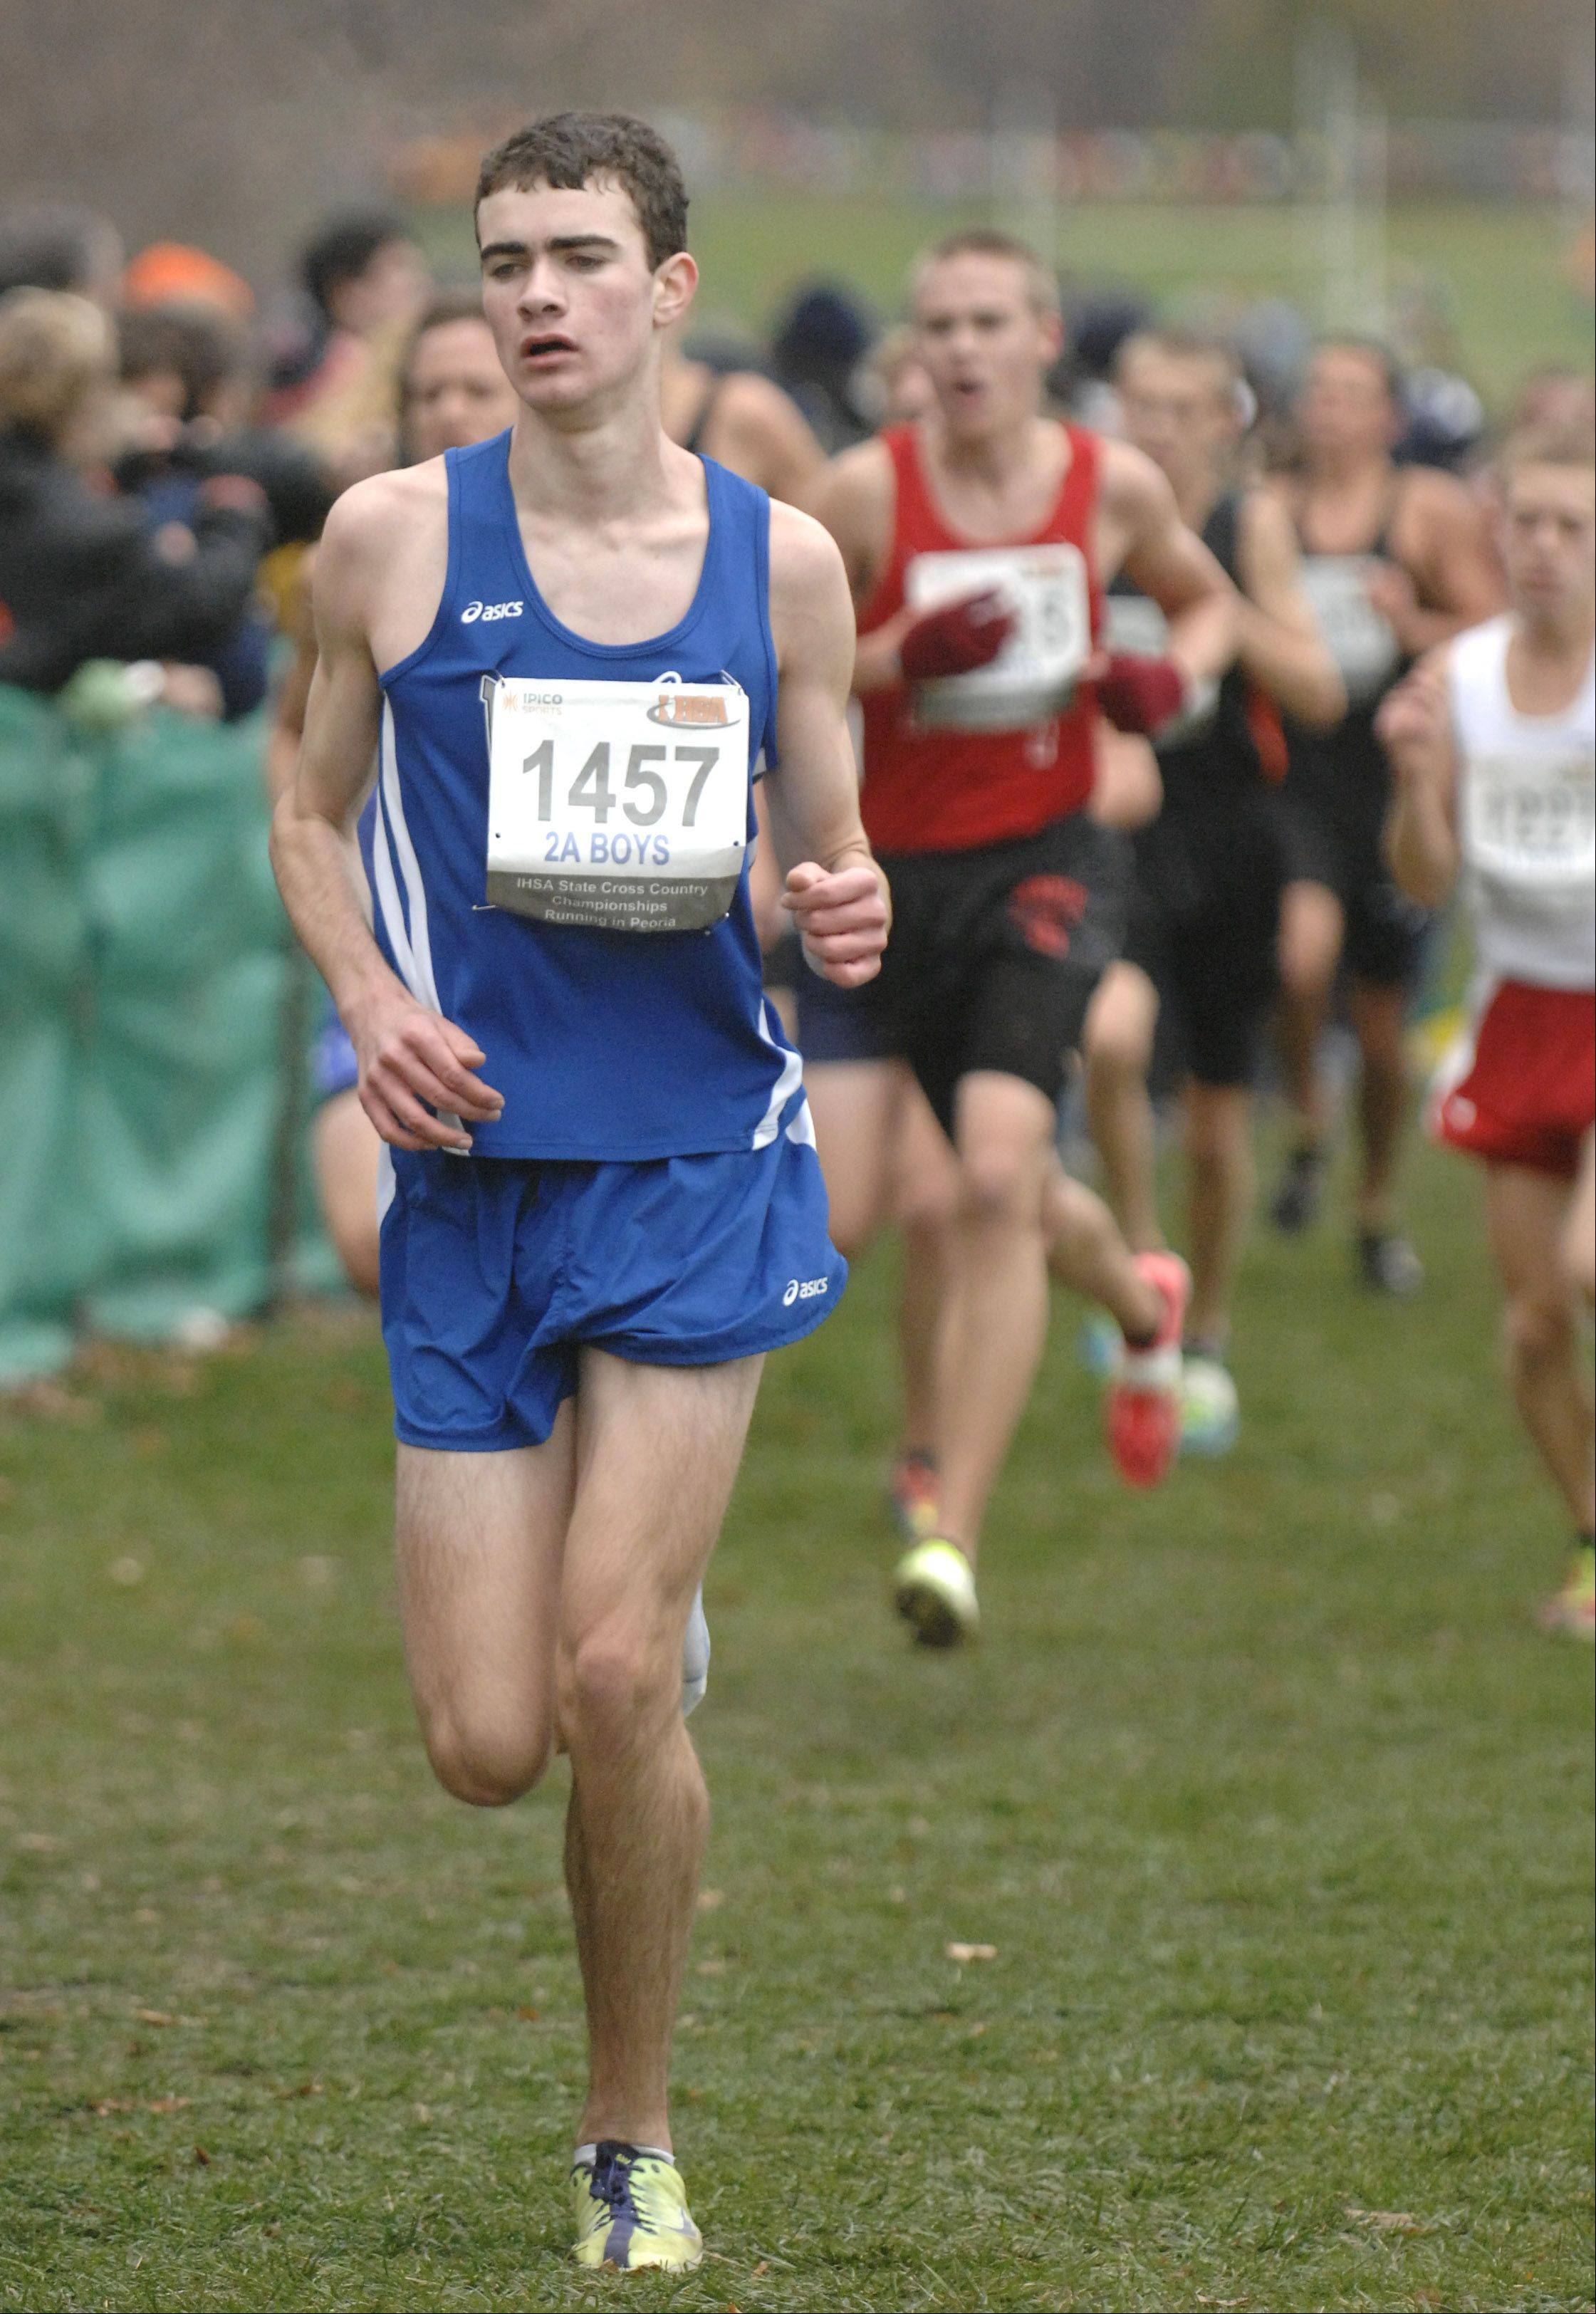 Vernon Hills� Ben Mohrdieck, here competing in last year�s state meet, has much more company this time around as the Cougars qualified as a team and will run together in Saturday�s 2A title race.